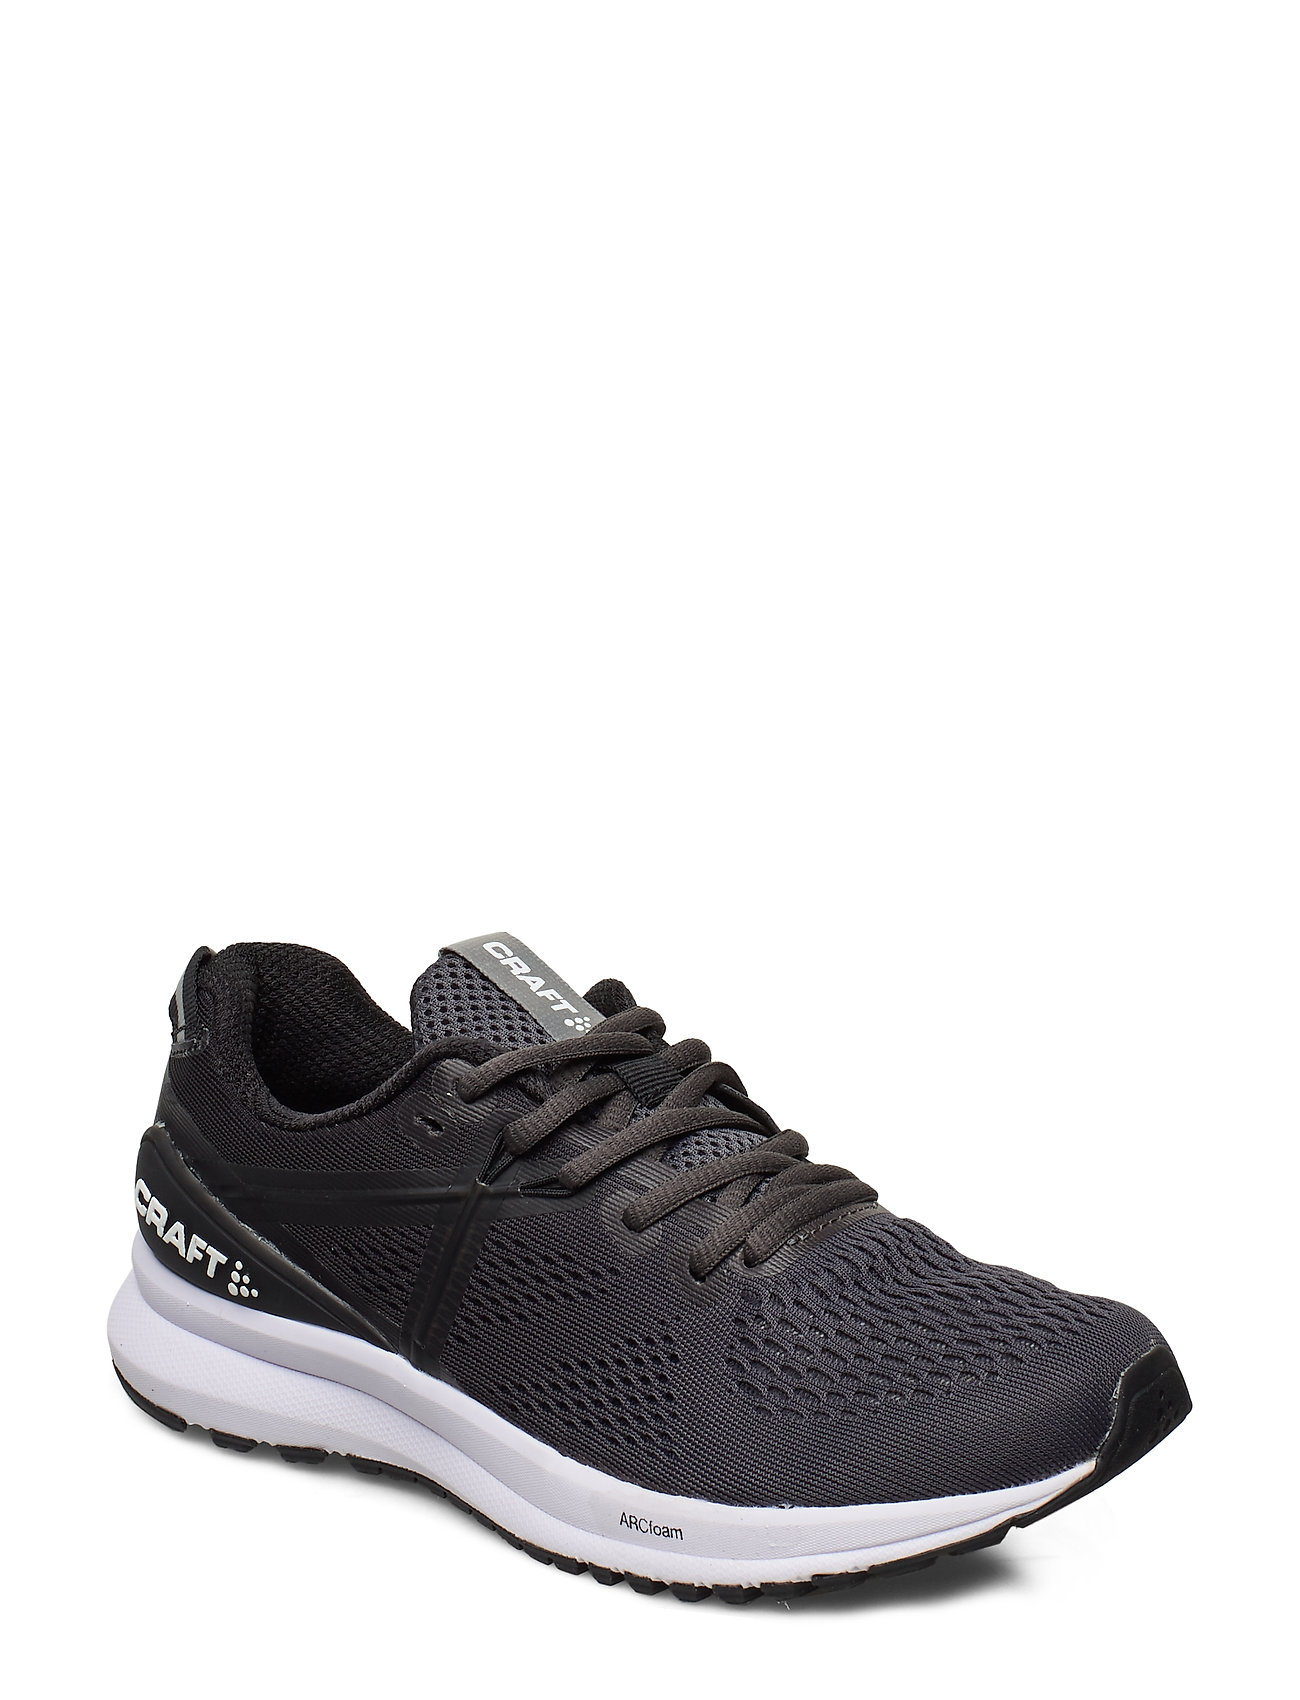 Image of Shoe X165 Engineered W Shoes Sport Shoes Running Shoes Sort Craft (3449089369)